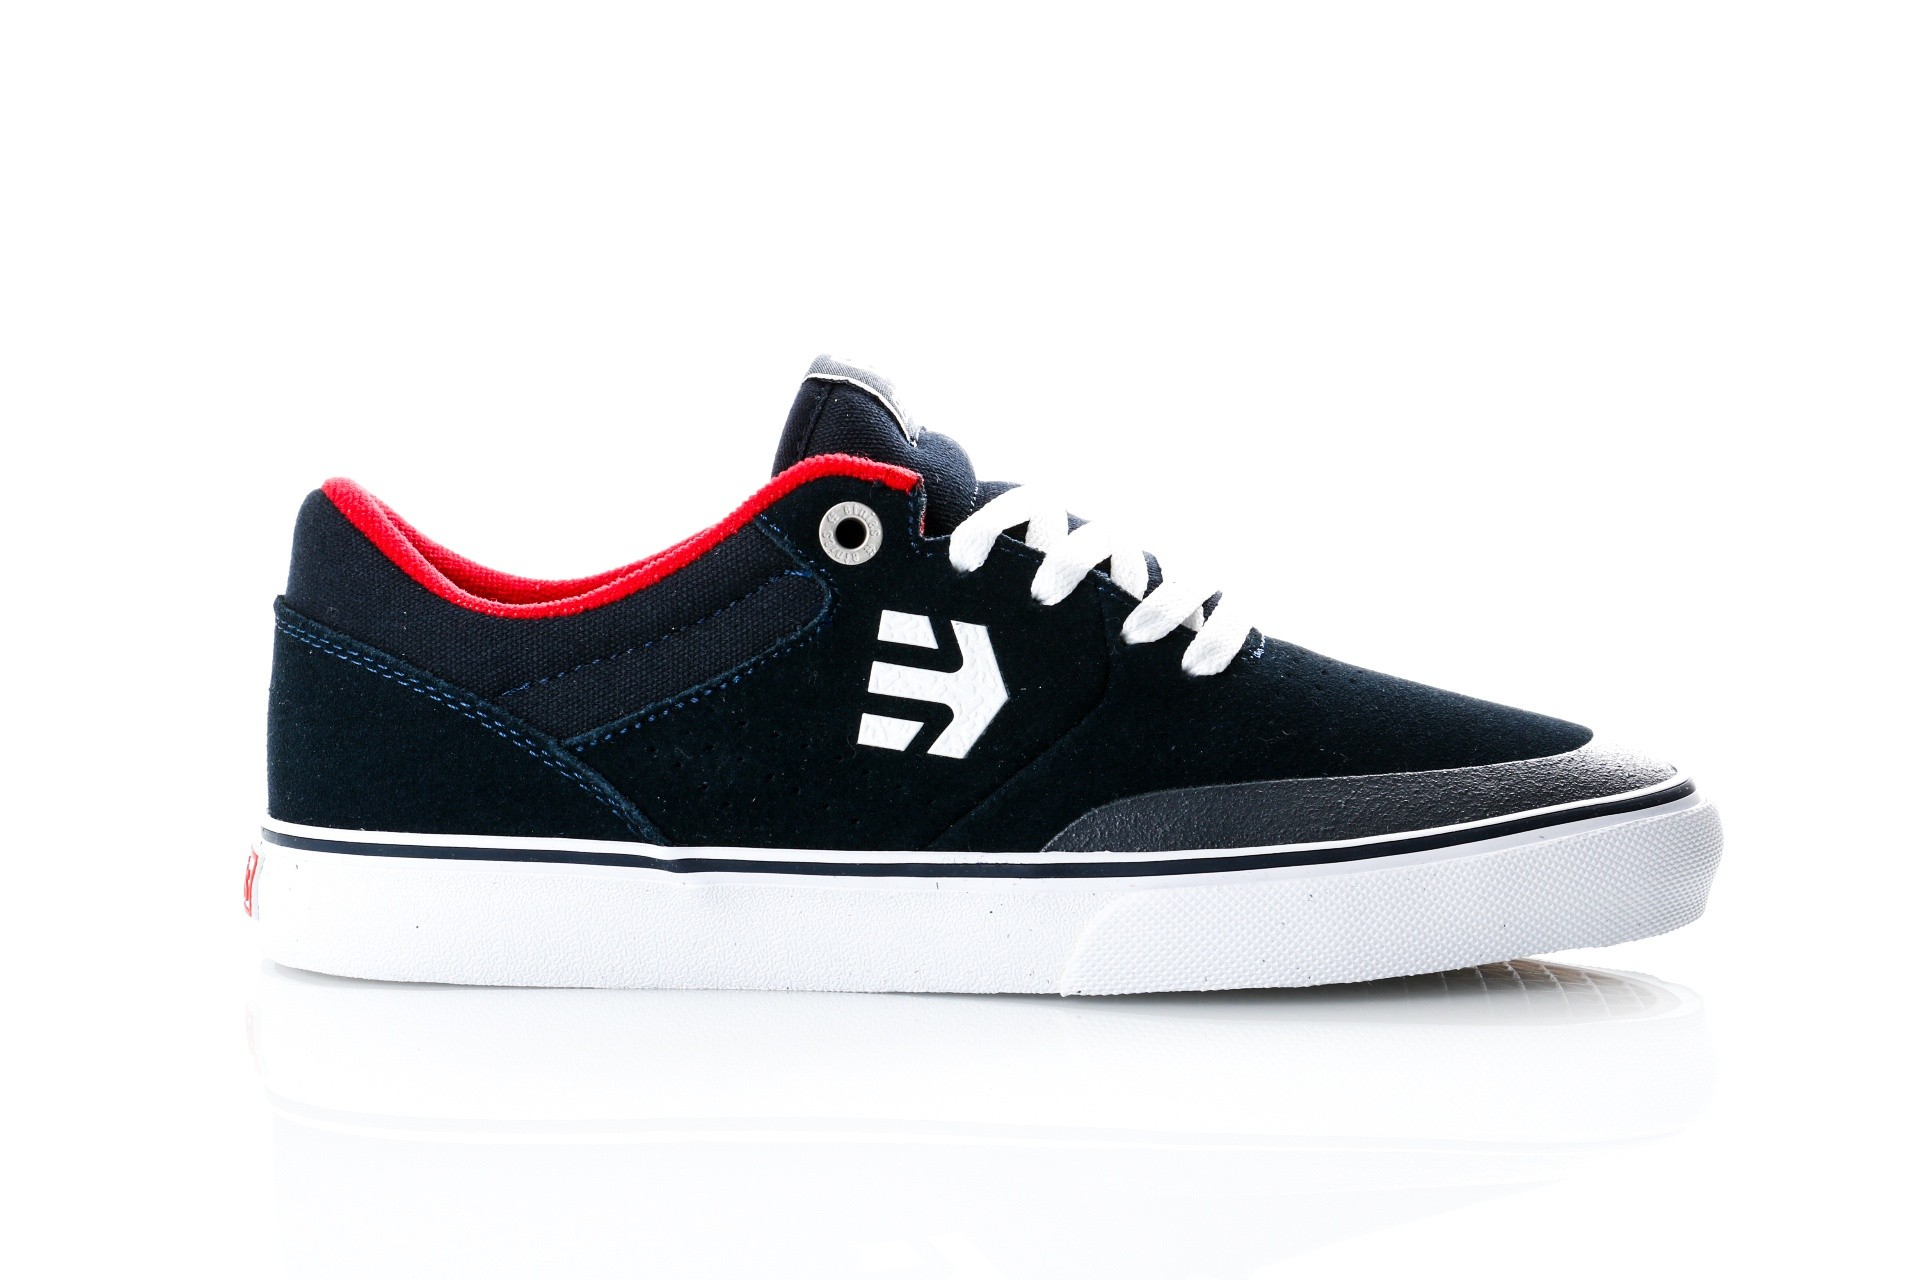 Foto van Etnies MARANA VULC 4101000425 Sneakers NAVY/WHITE/RED 60